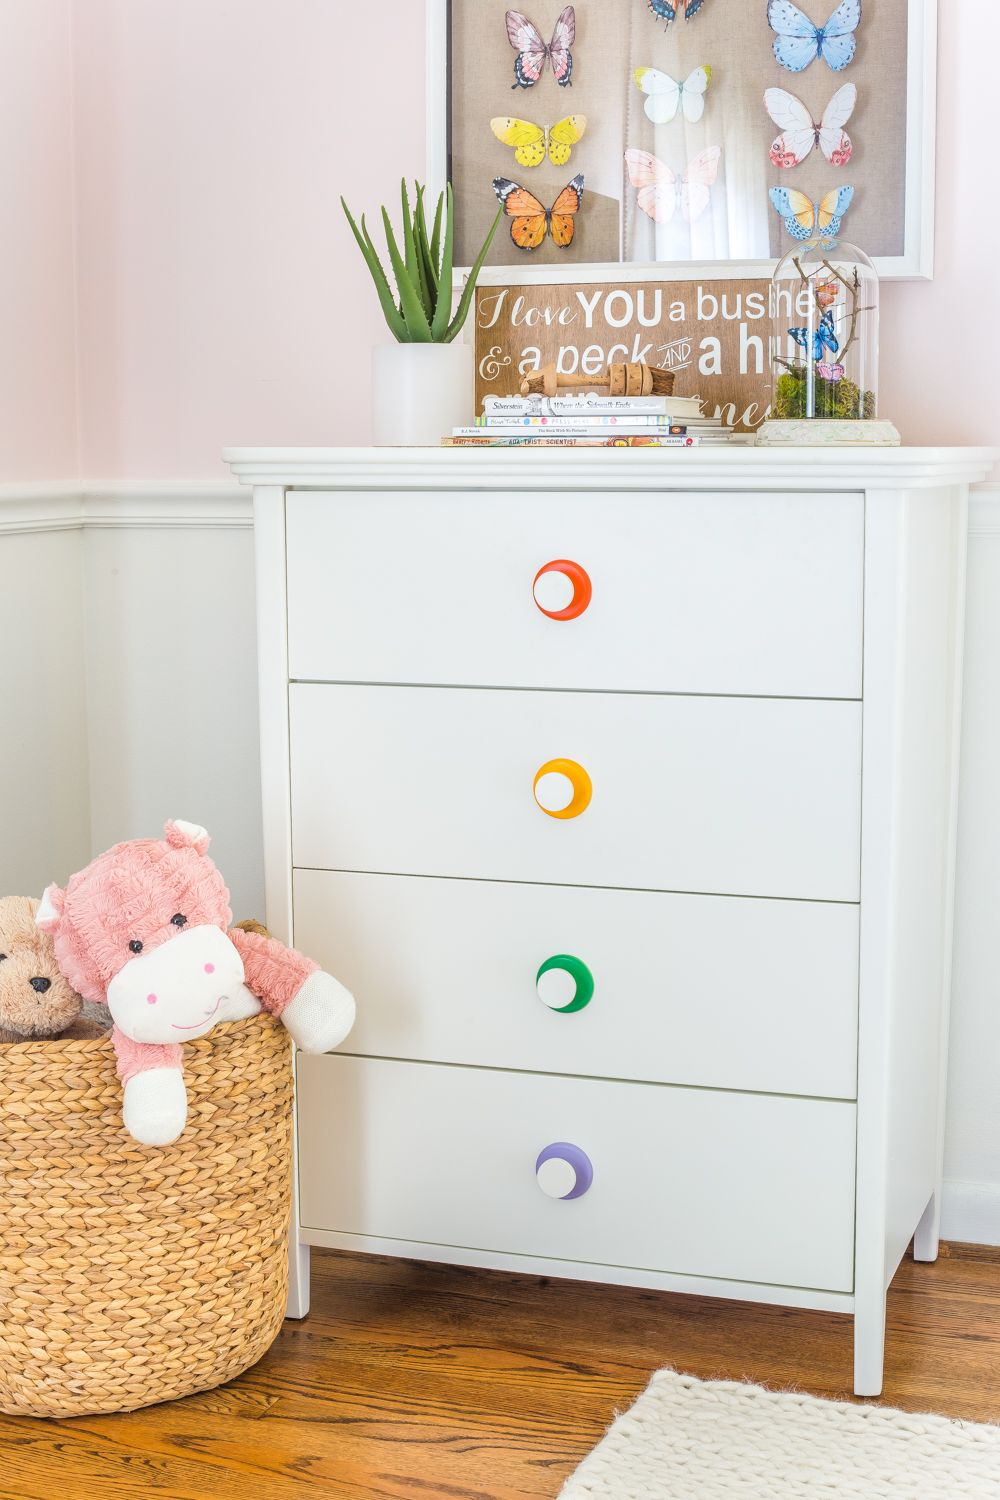 Craigslist Regrets Kids Decor From Walmart With Images Home Decor Decor Affordable Home Decor